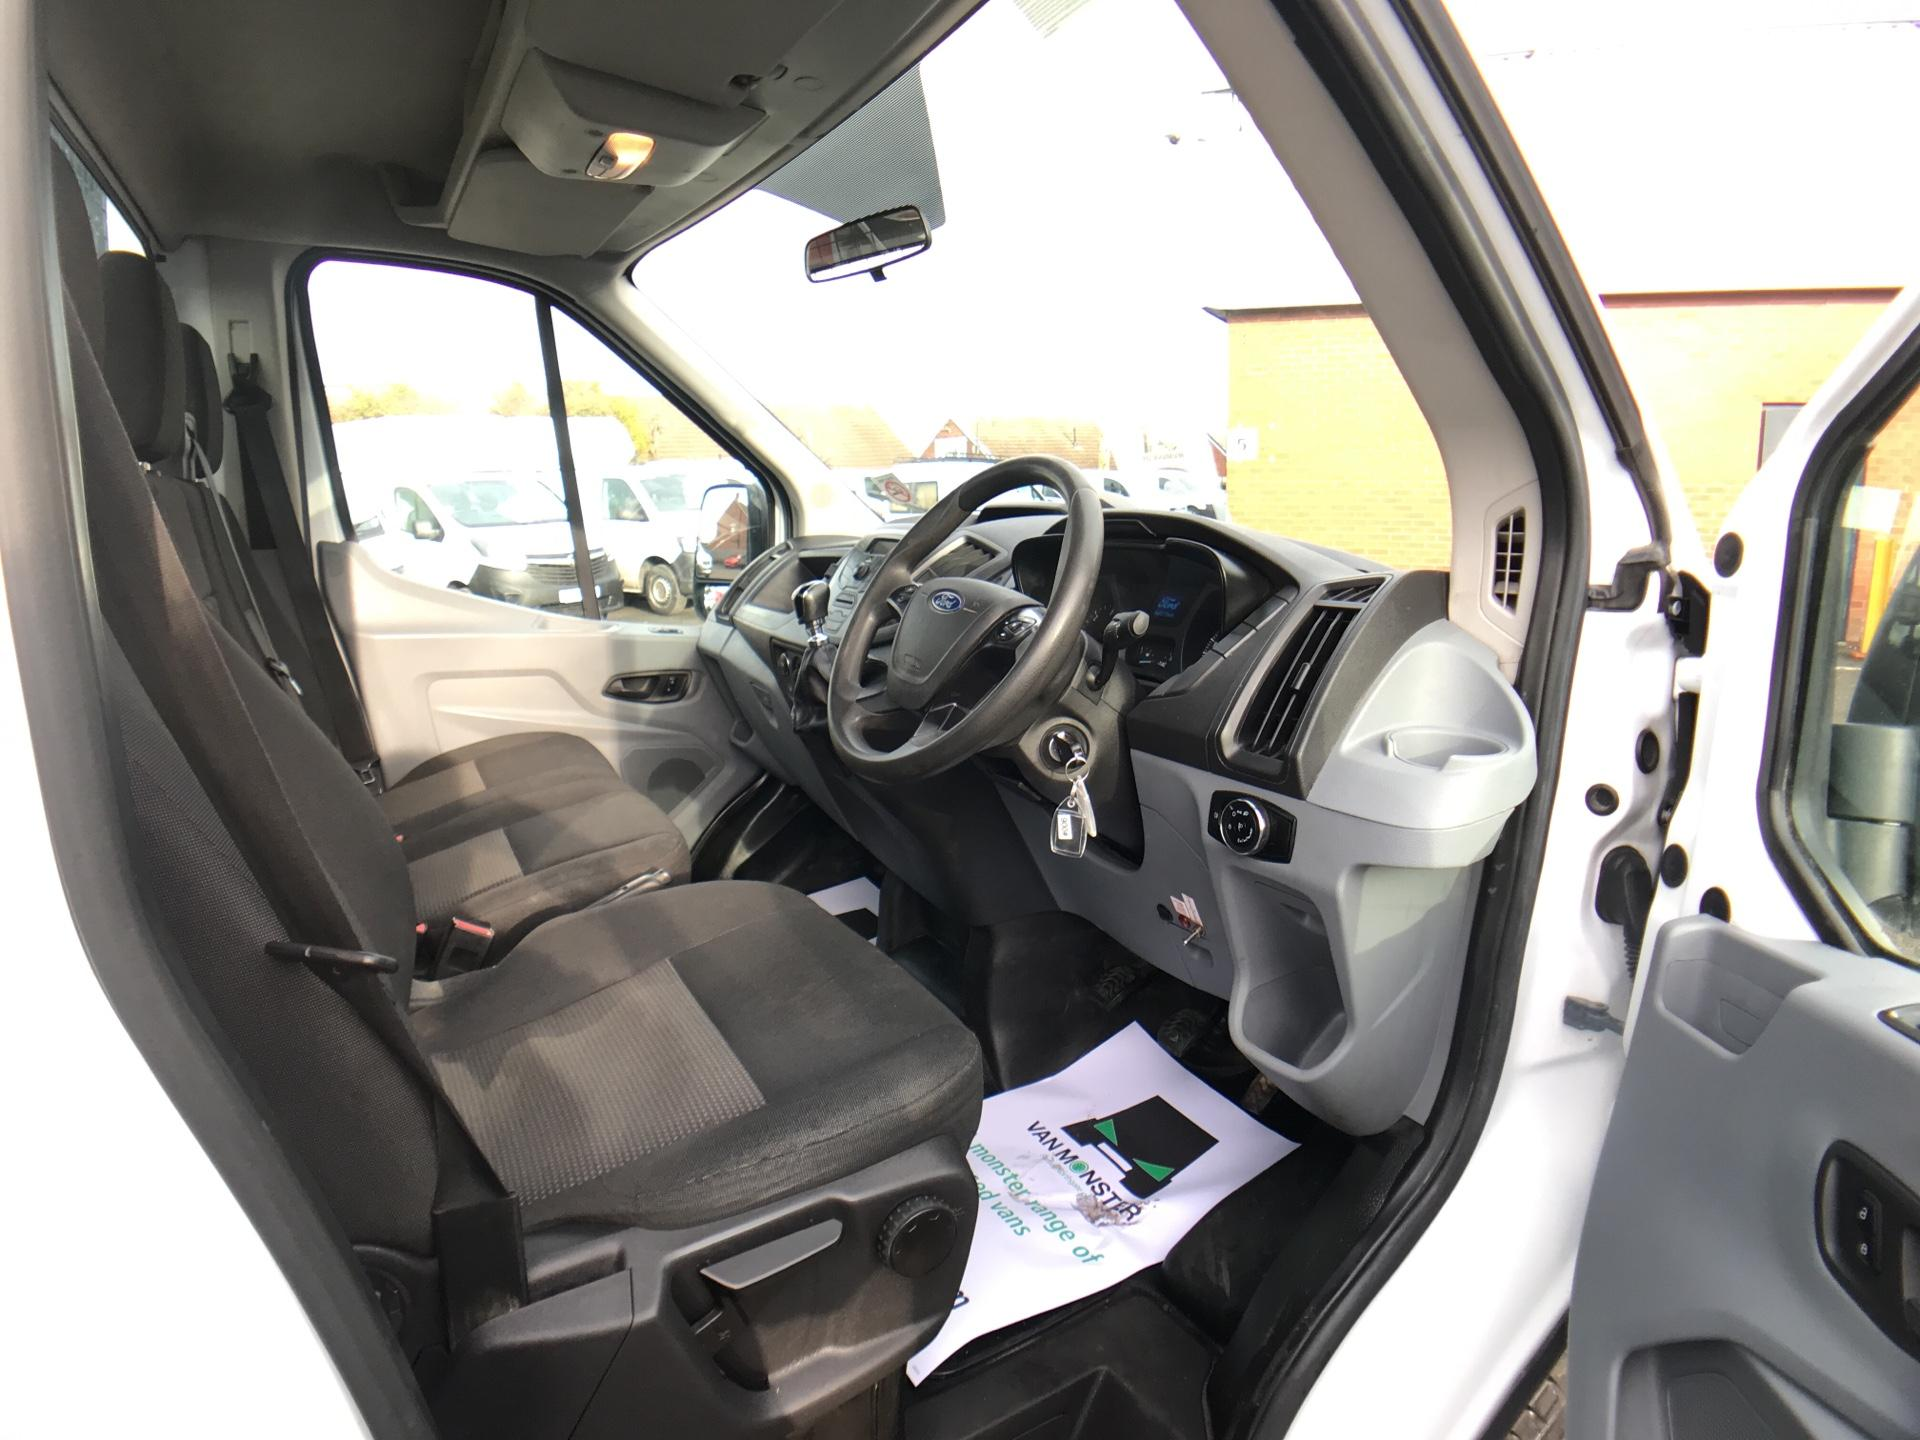 2016 Ford Transit 350 L2 SINGLE CAB TIPPER 125PS EURO 5 *VALUE RANGE VEHICLE CONDITION REFLECTED IN PRICE* (WR65VYK) Image 9